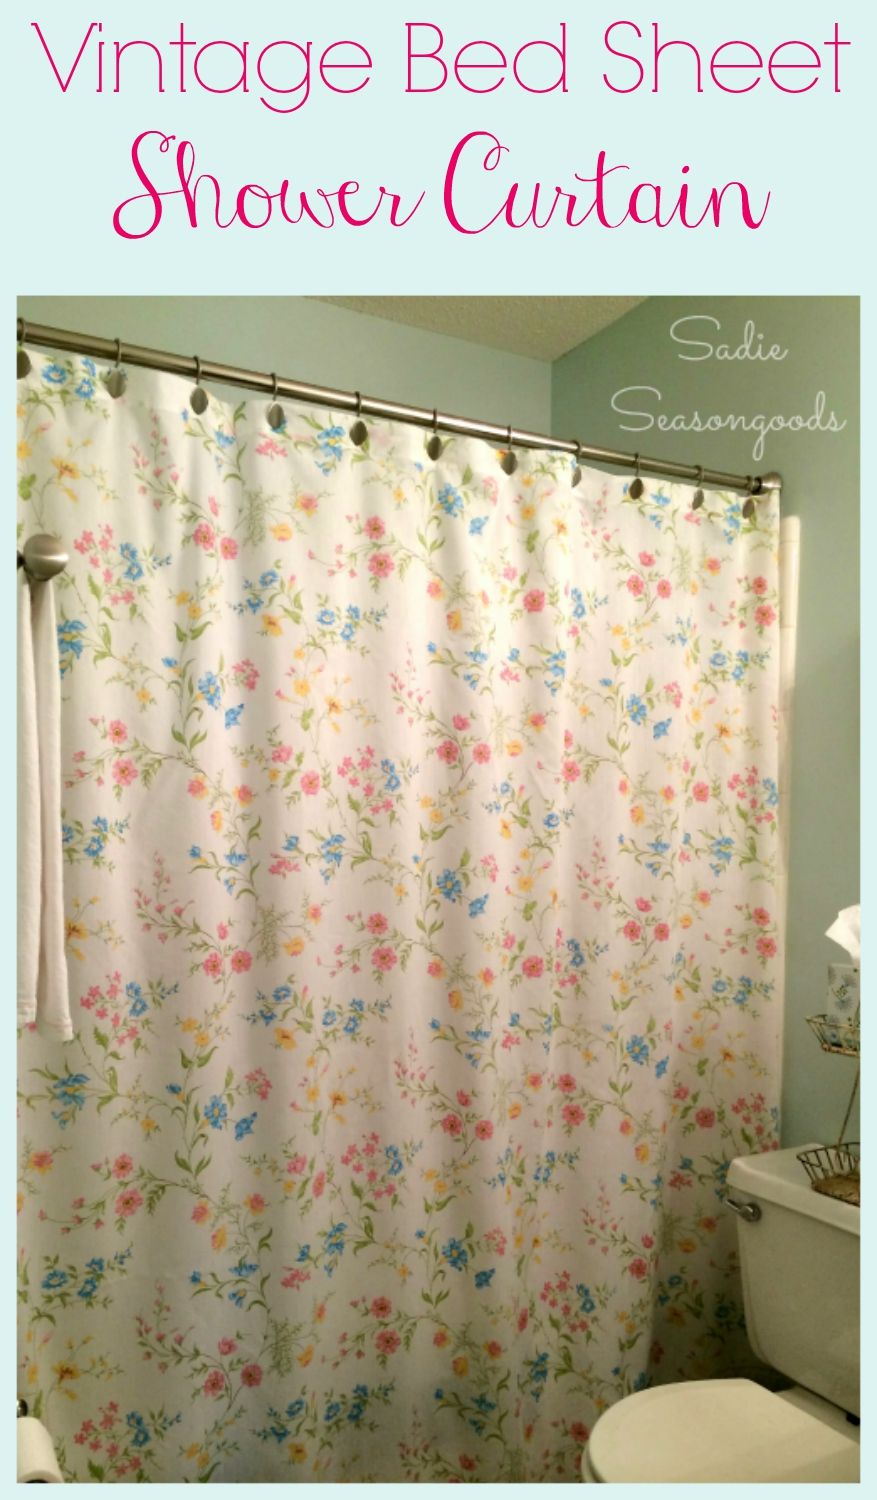 Floral Shower Curtain For A Cottage Bathroom From Vintage Bed